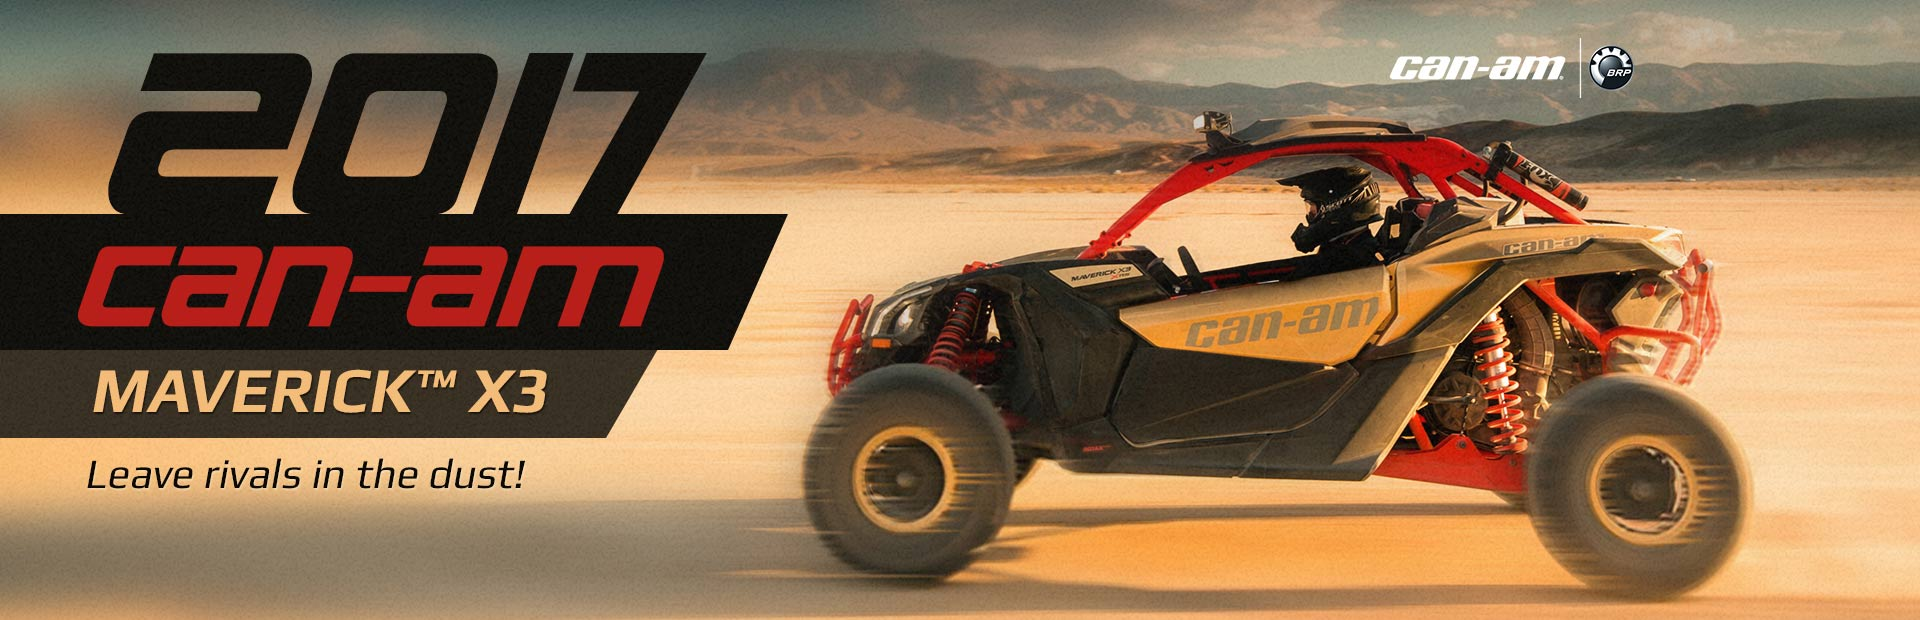 The 2017 Can-Am Maverick™ X3: Click here for details.